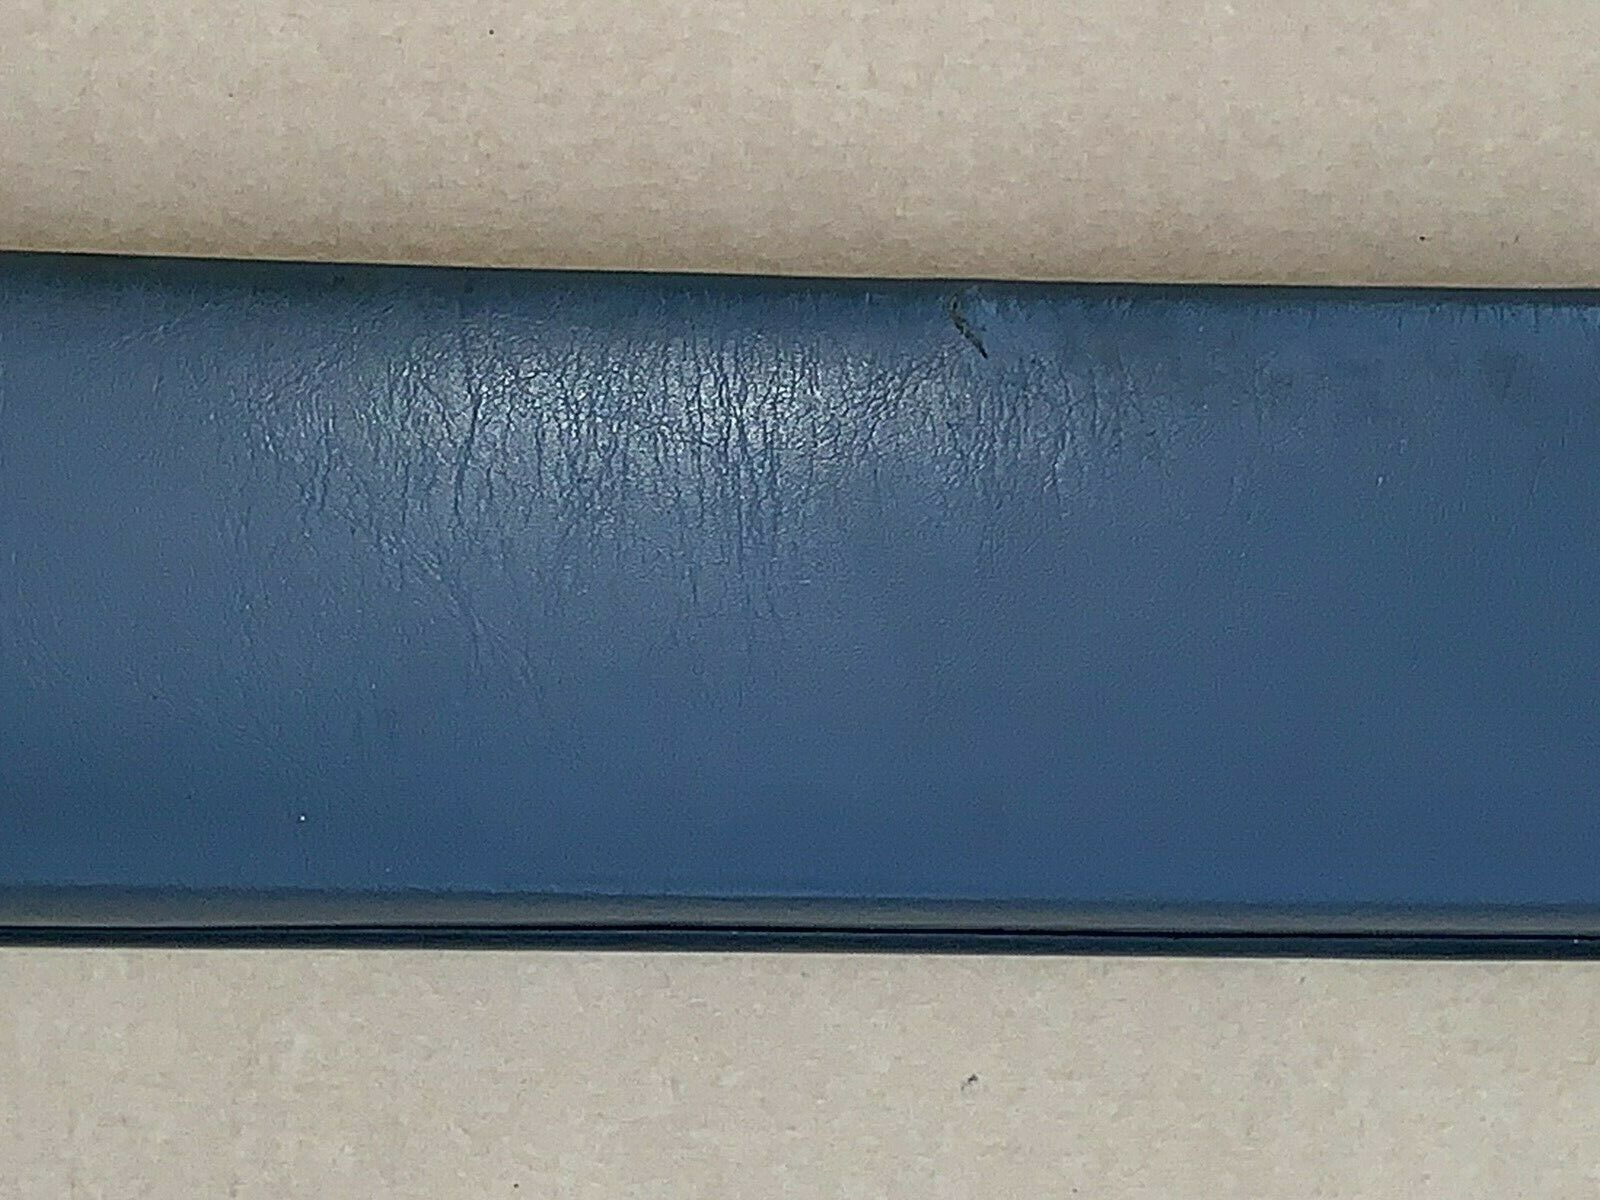 2000 Toyota Tacoma Door Panel TRIM ONLY Drivers Side LHS  OEM  DTRIMLEFT